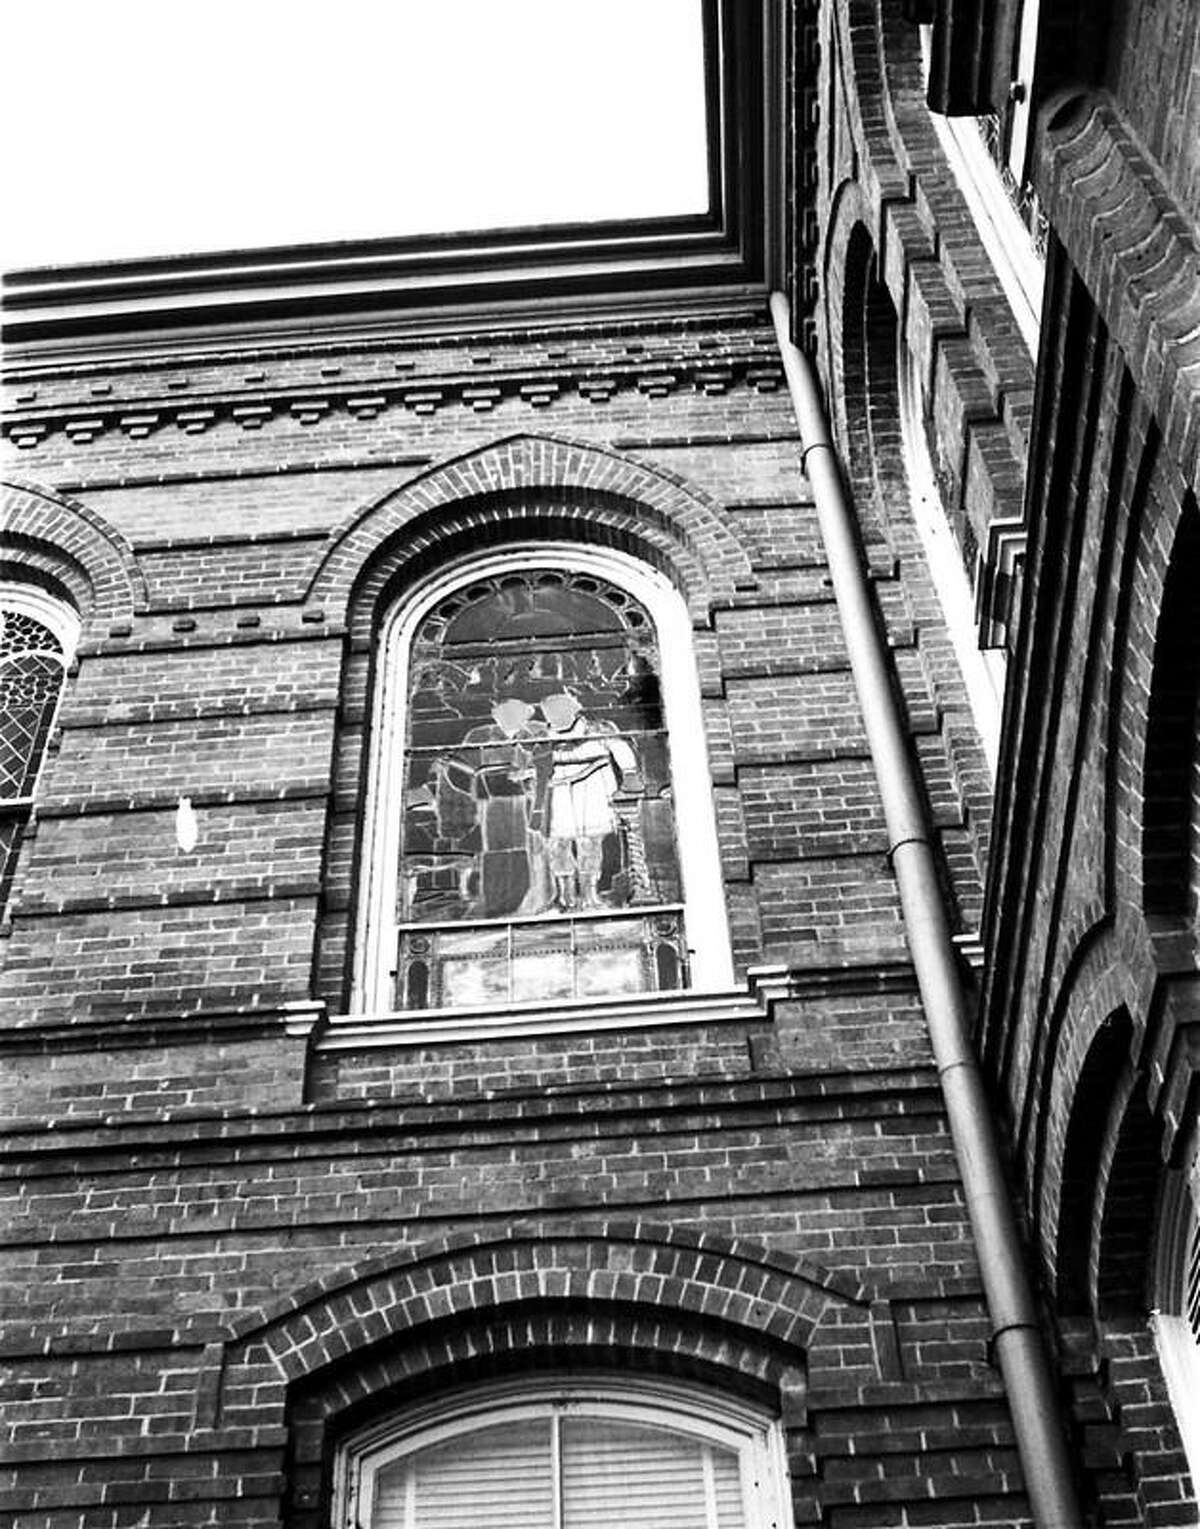 The original stained-glass window at Old Main on the Sam Houston State University campus in the 1970s.